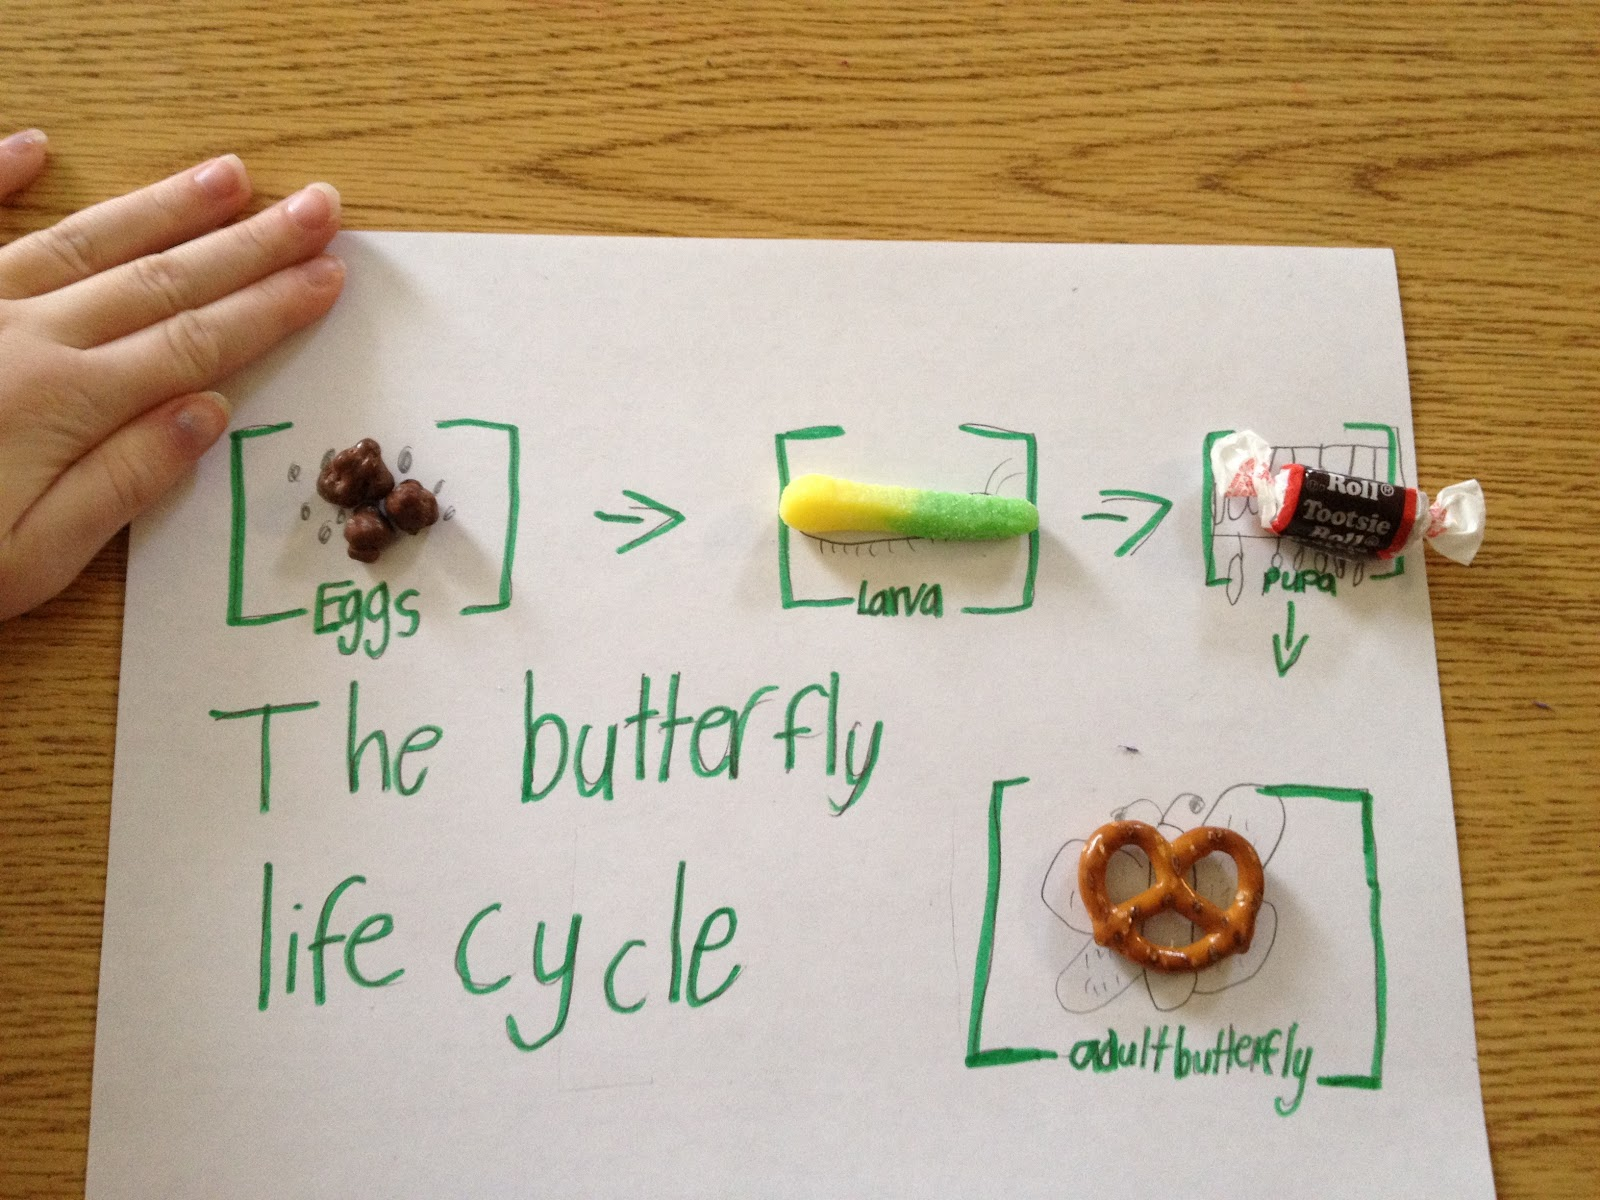 Owl butterfly life cycle - photo#3